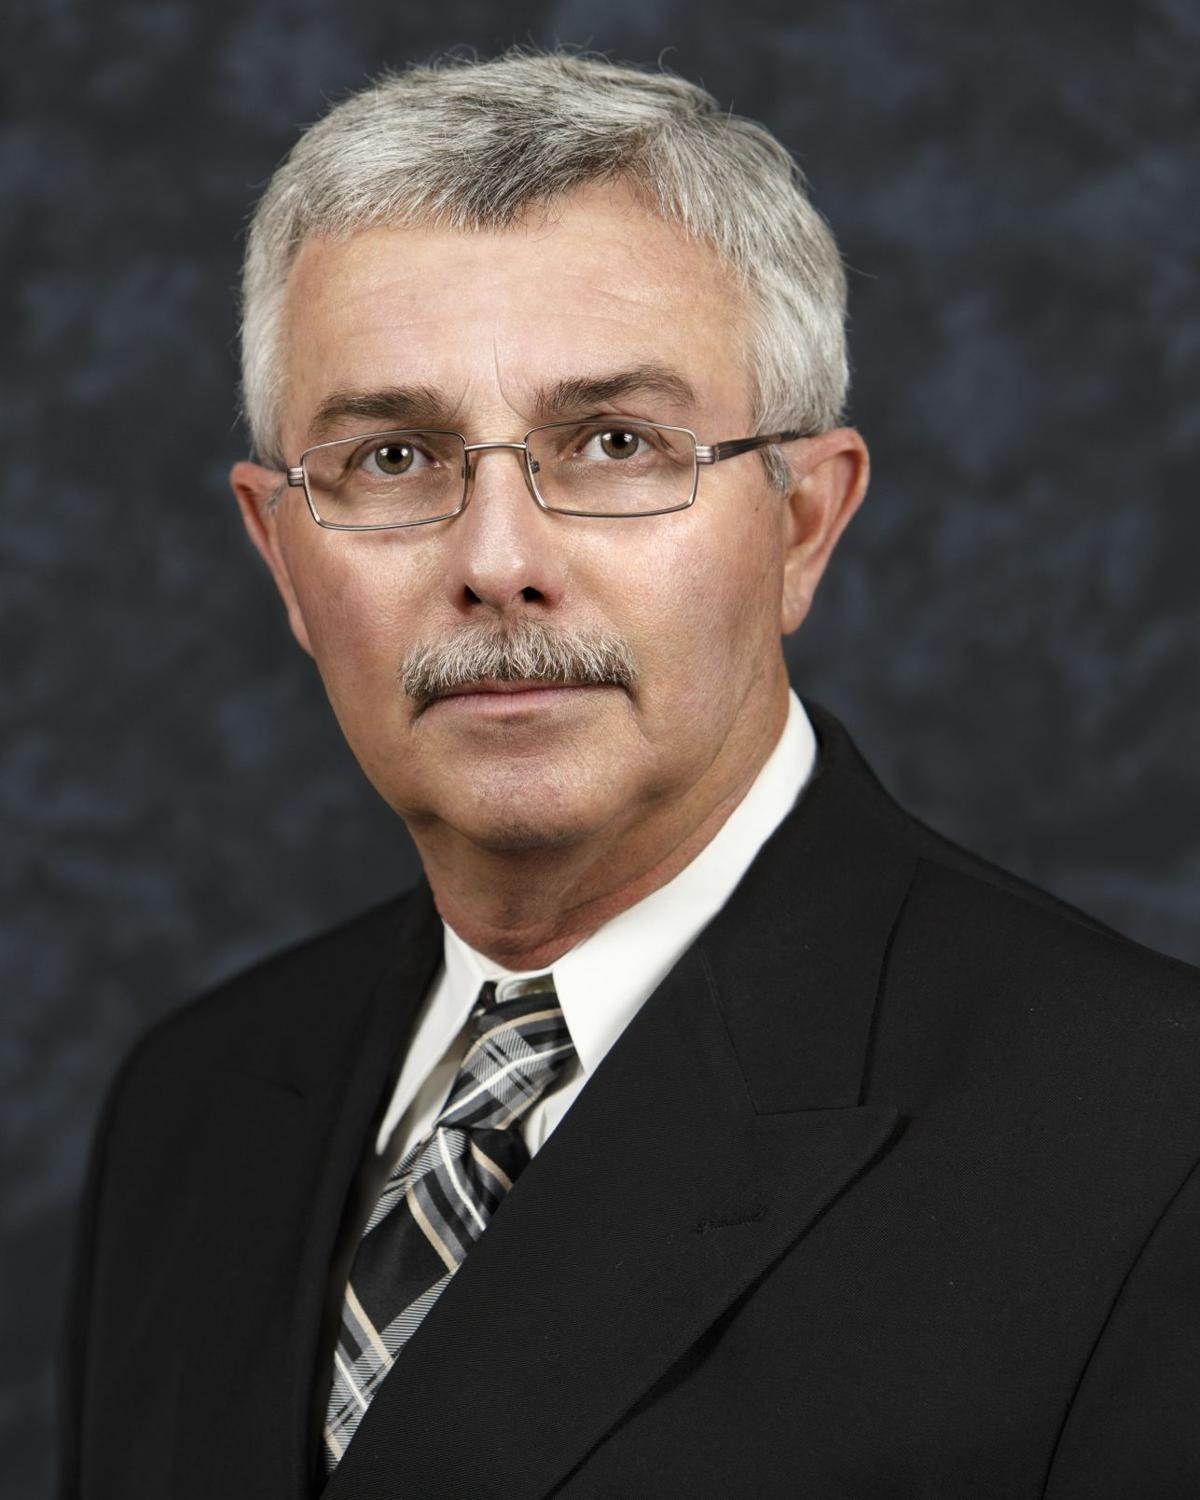 Meet the candidates for Dawson County Board of Commissioner Chair